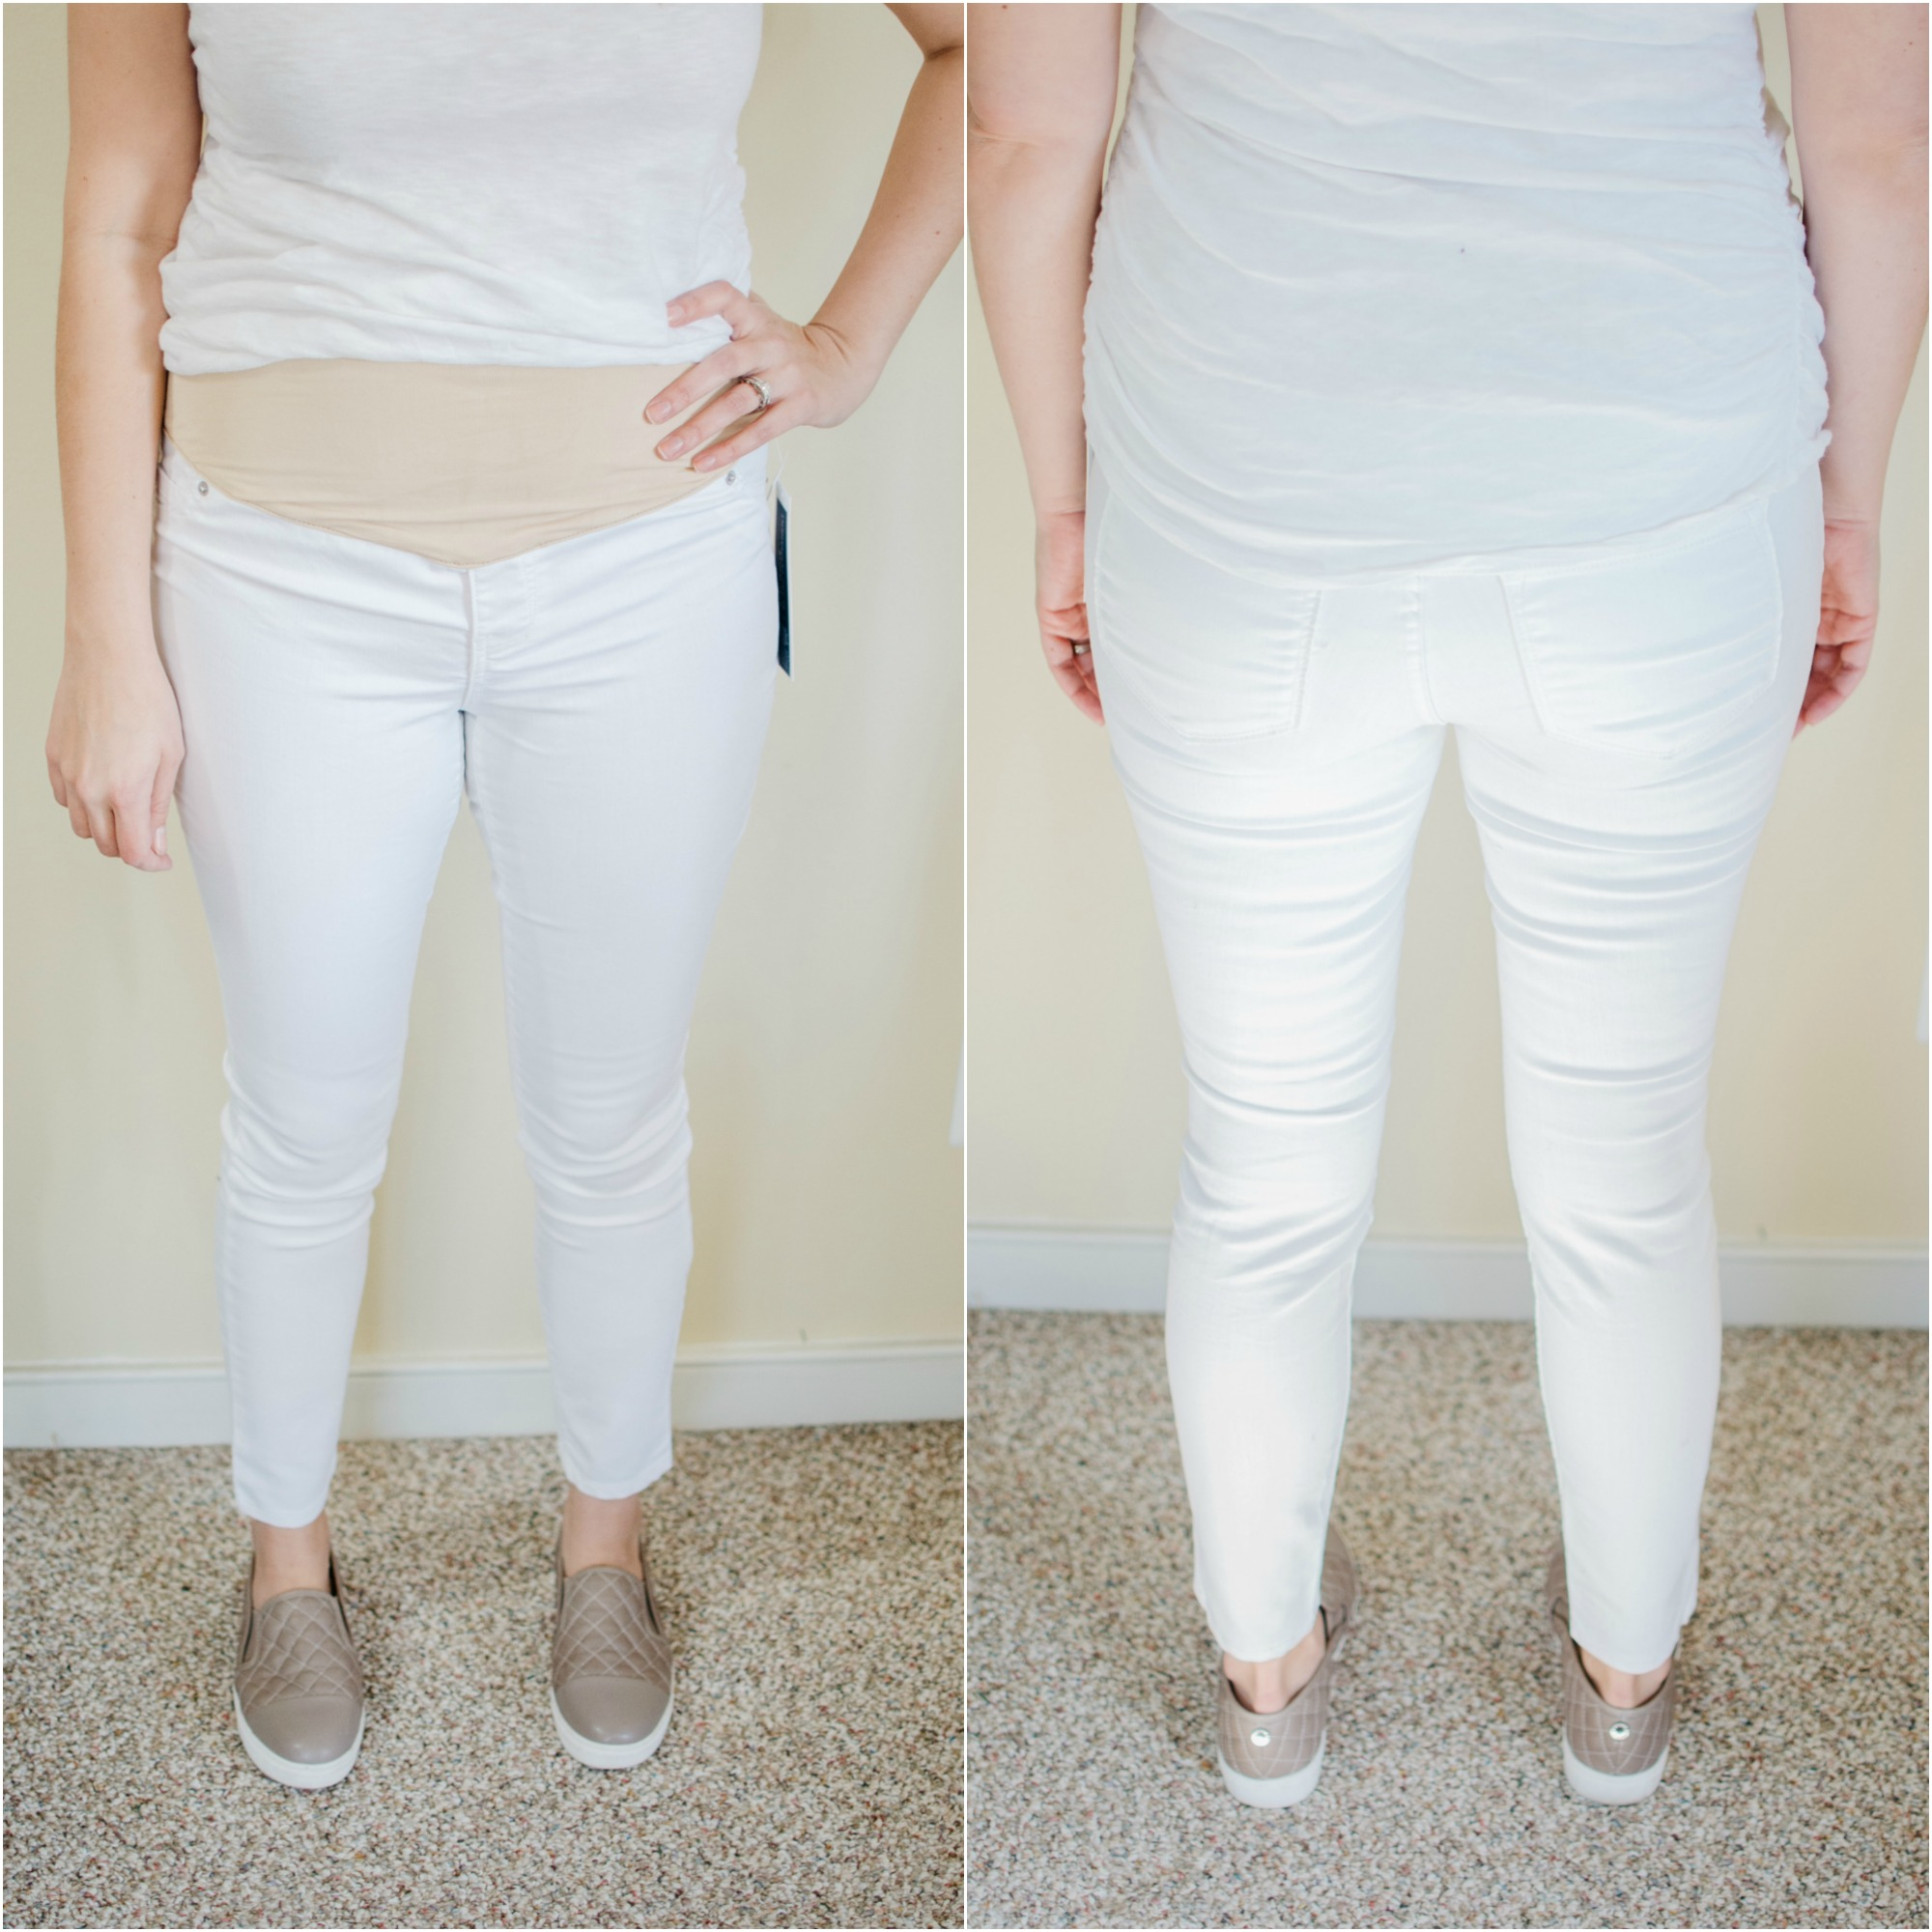 Old Navy Maternity Jeans reviews - best white maternity jeans | See reviews of over 15 maternity jeans brands by clicking through to this post! | bylaurenm.com